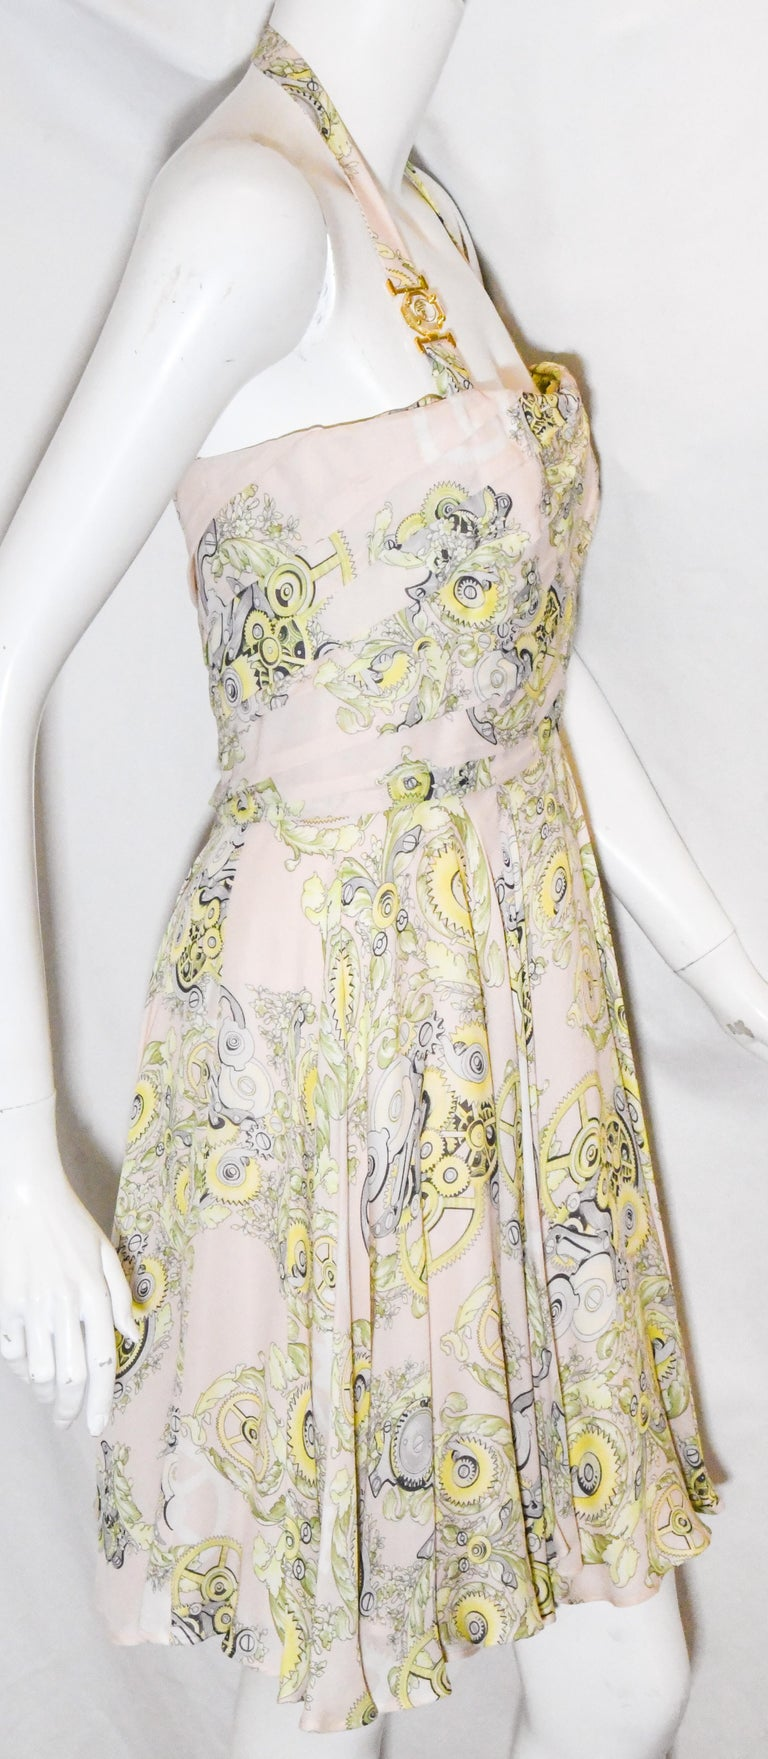 Women's Versace Collection Halter Top Full Skirt White & Yellow Print Dress For Sale